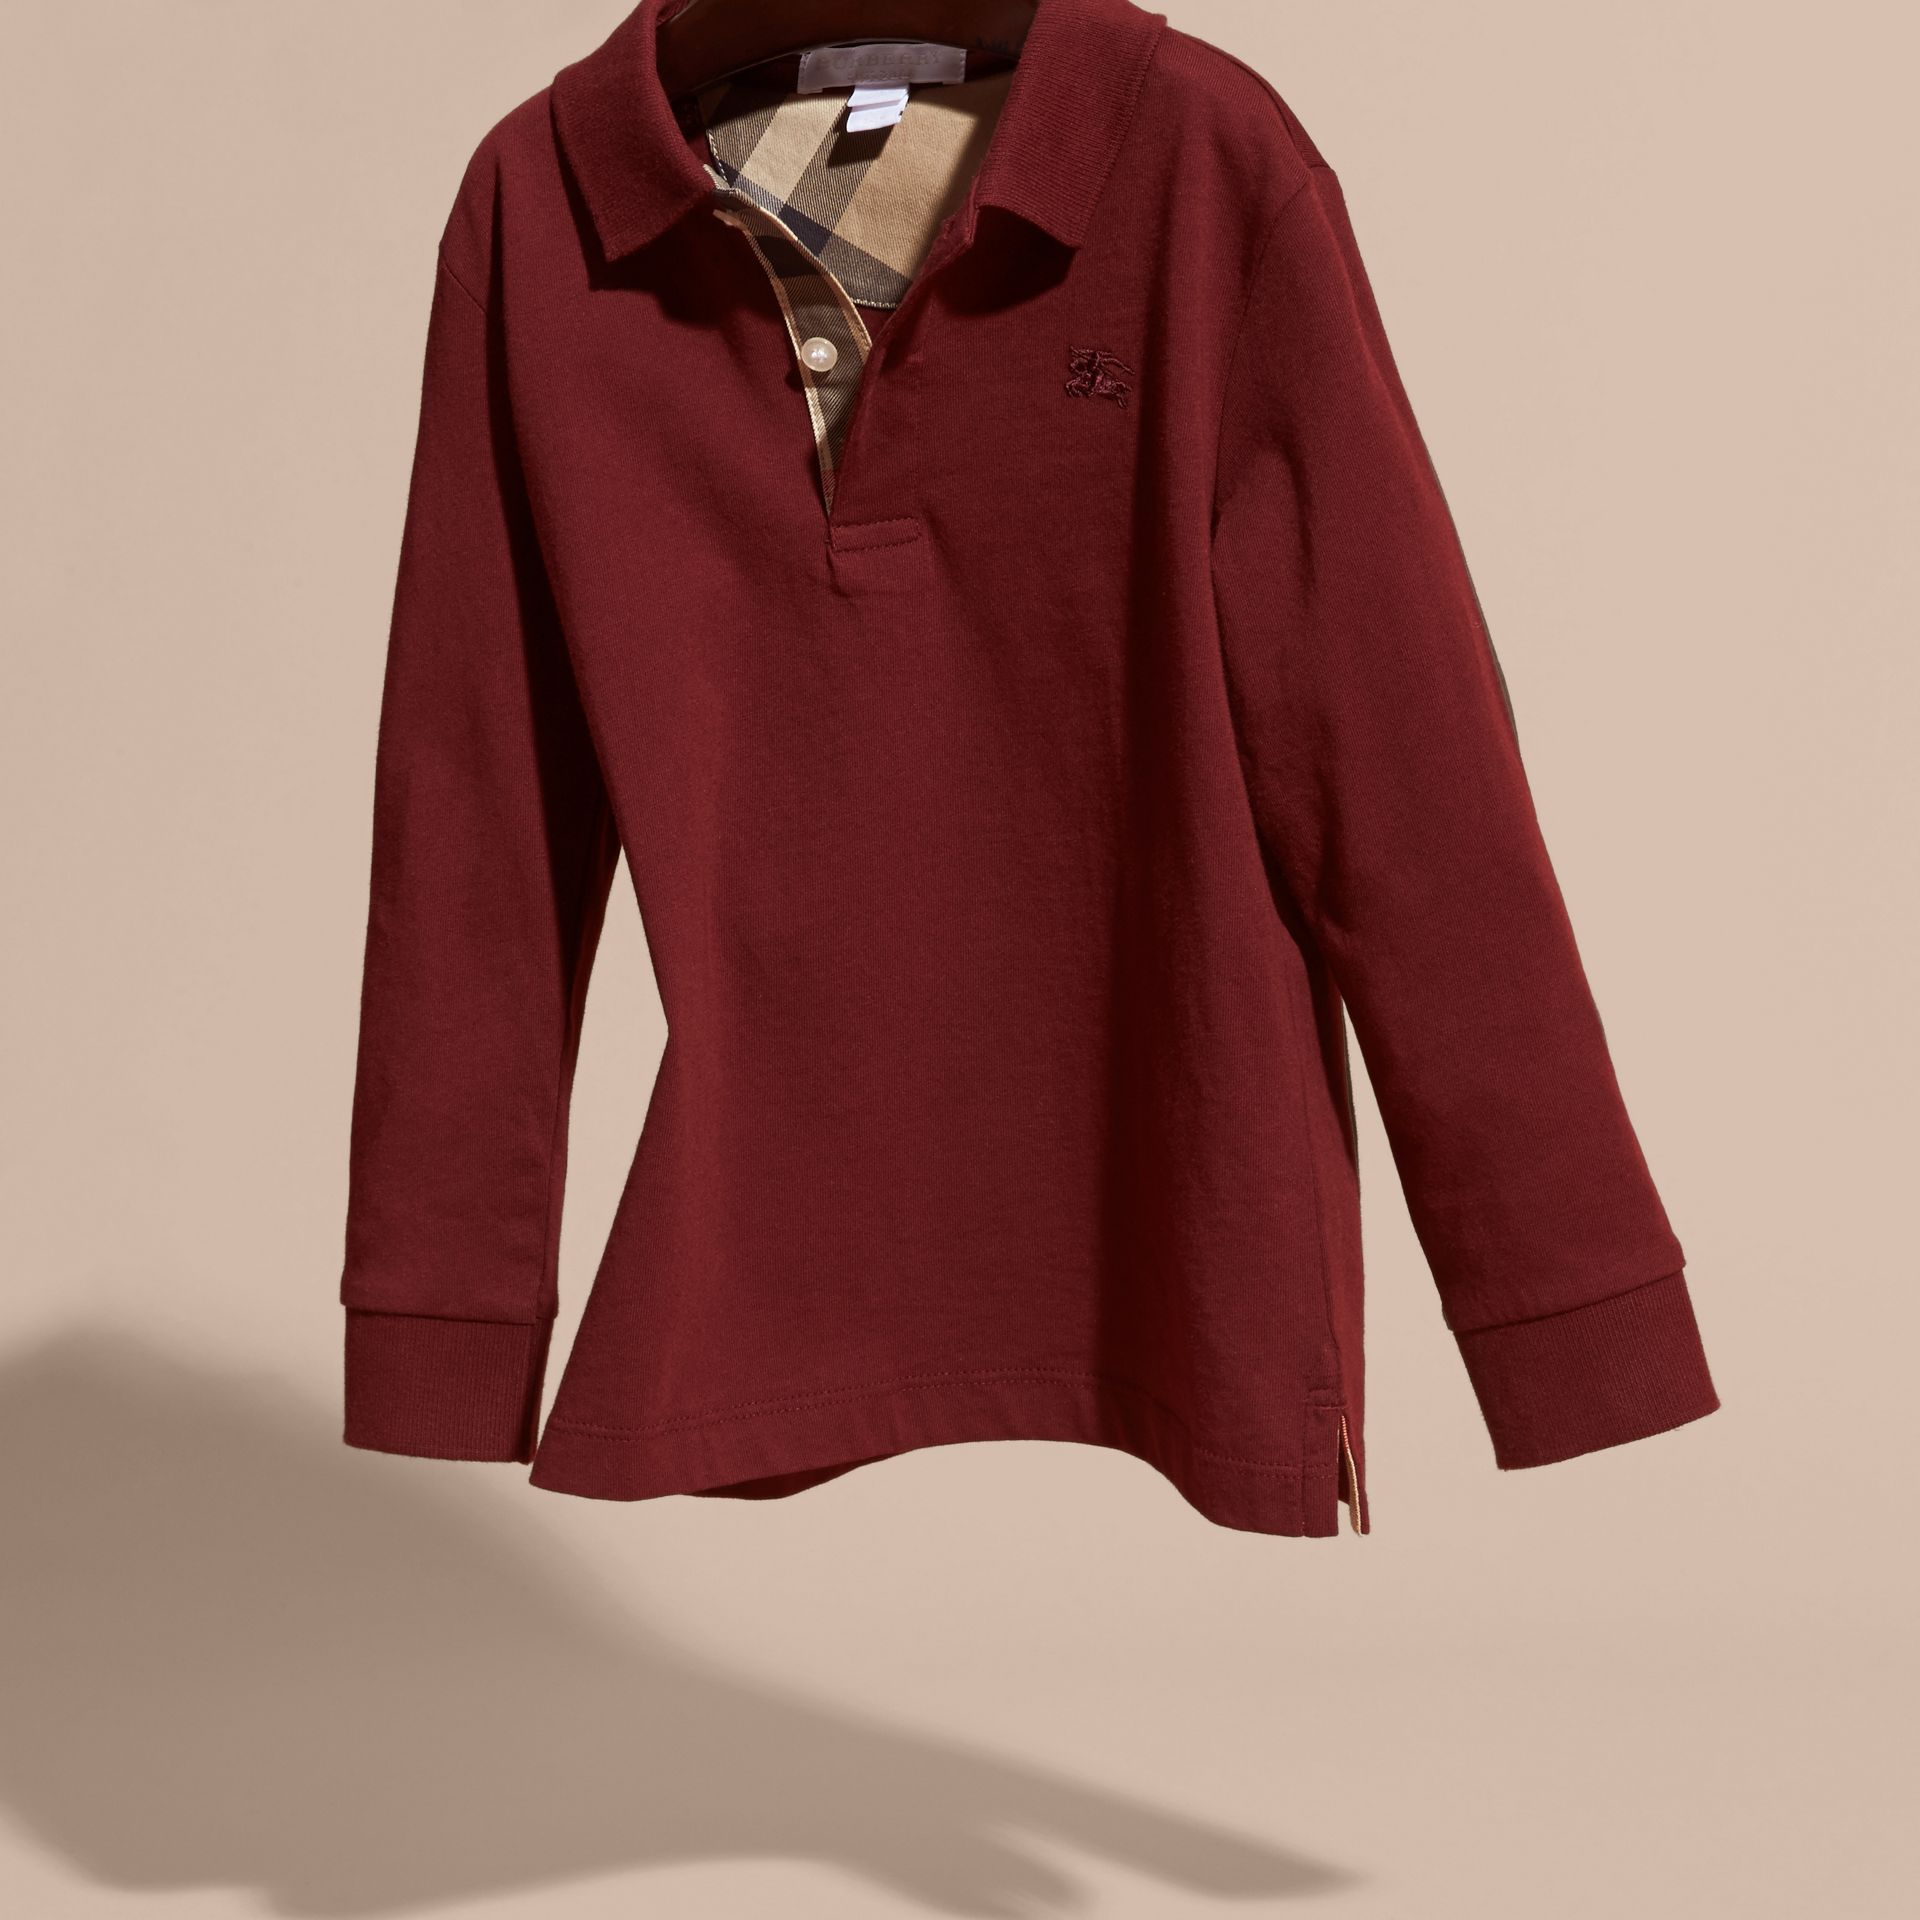 Burgundy red Long-sleeved Cotton Polo Shirt Burgundy Red - gallery image 3